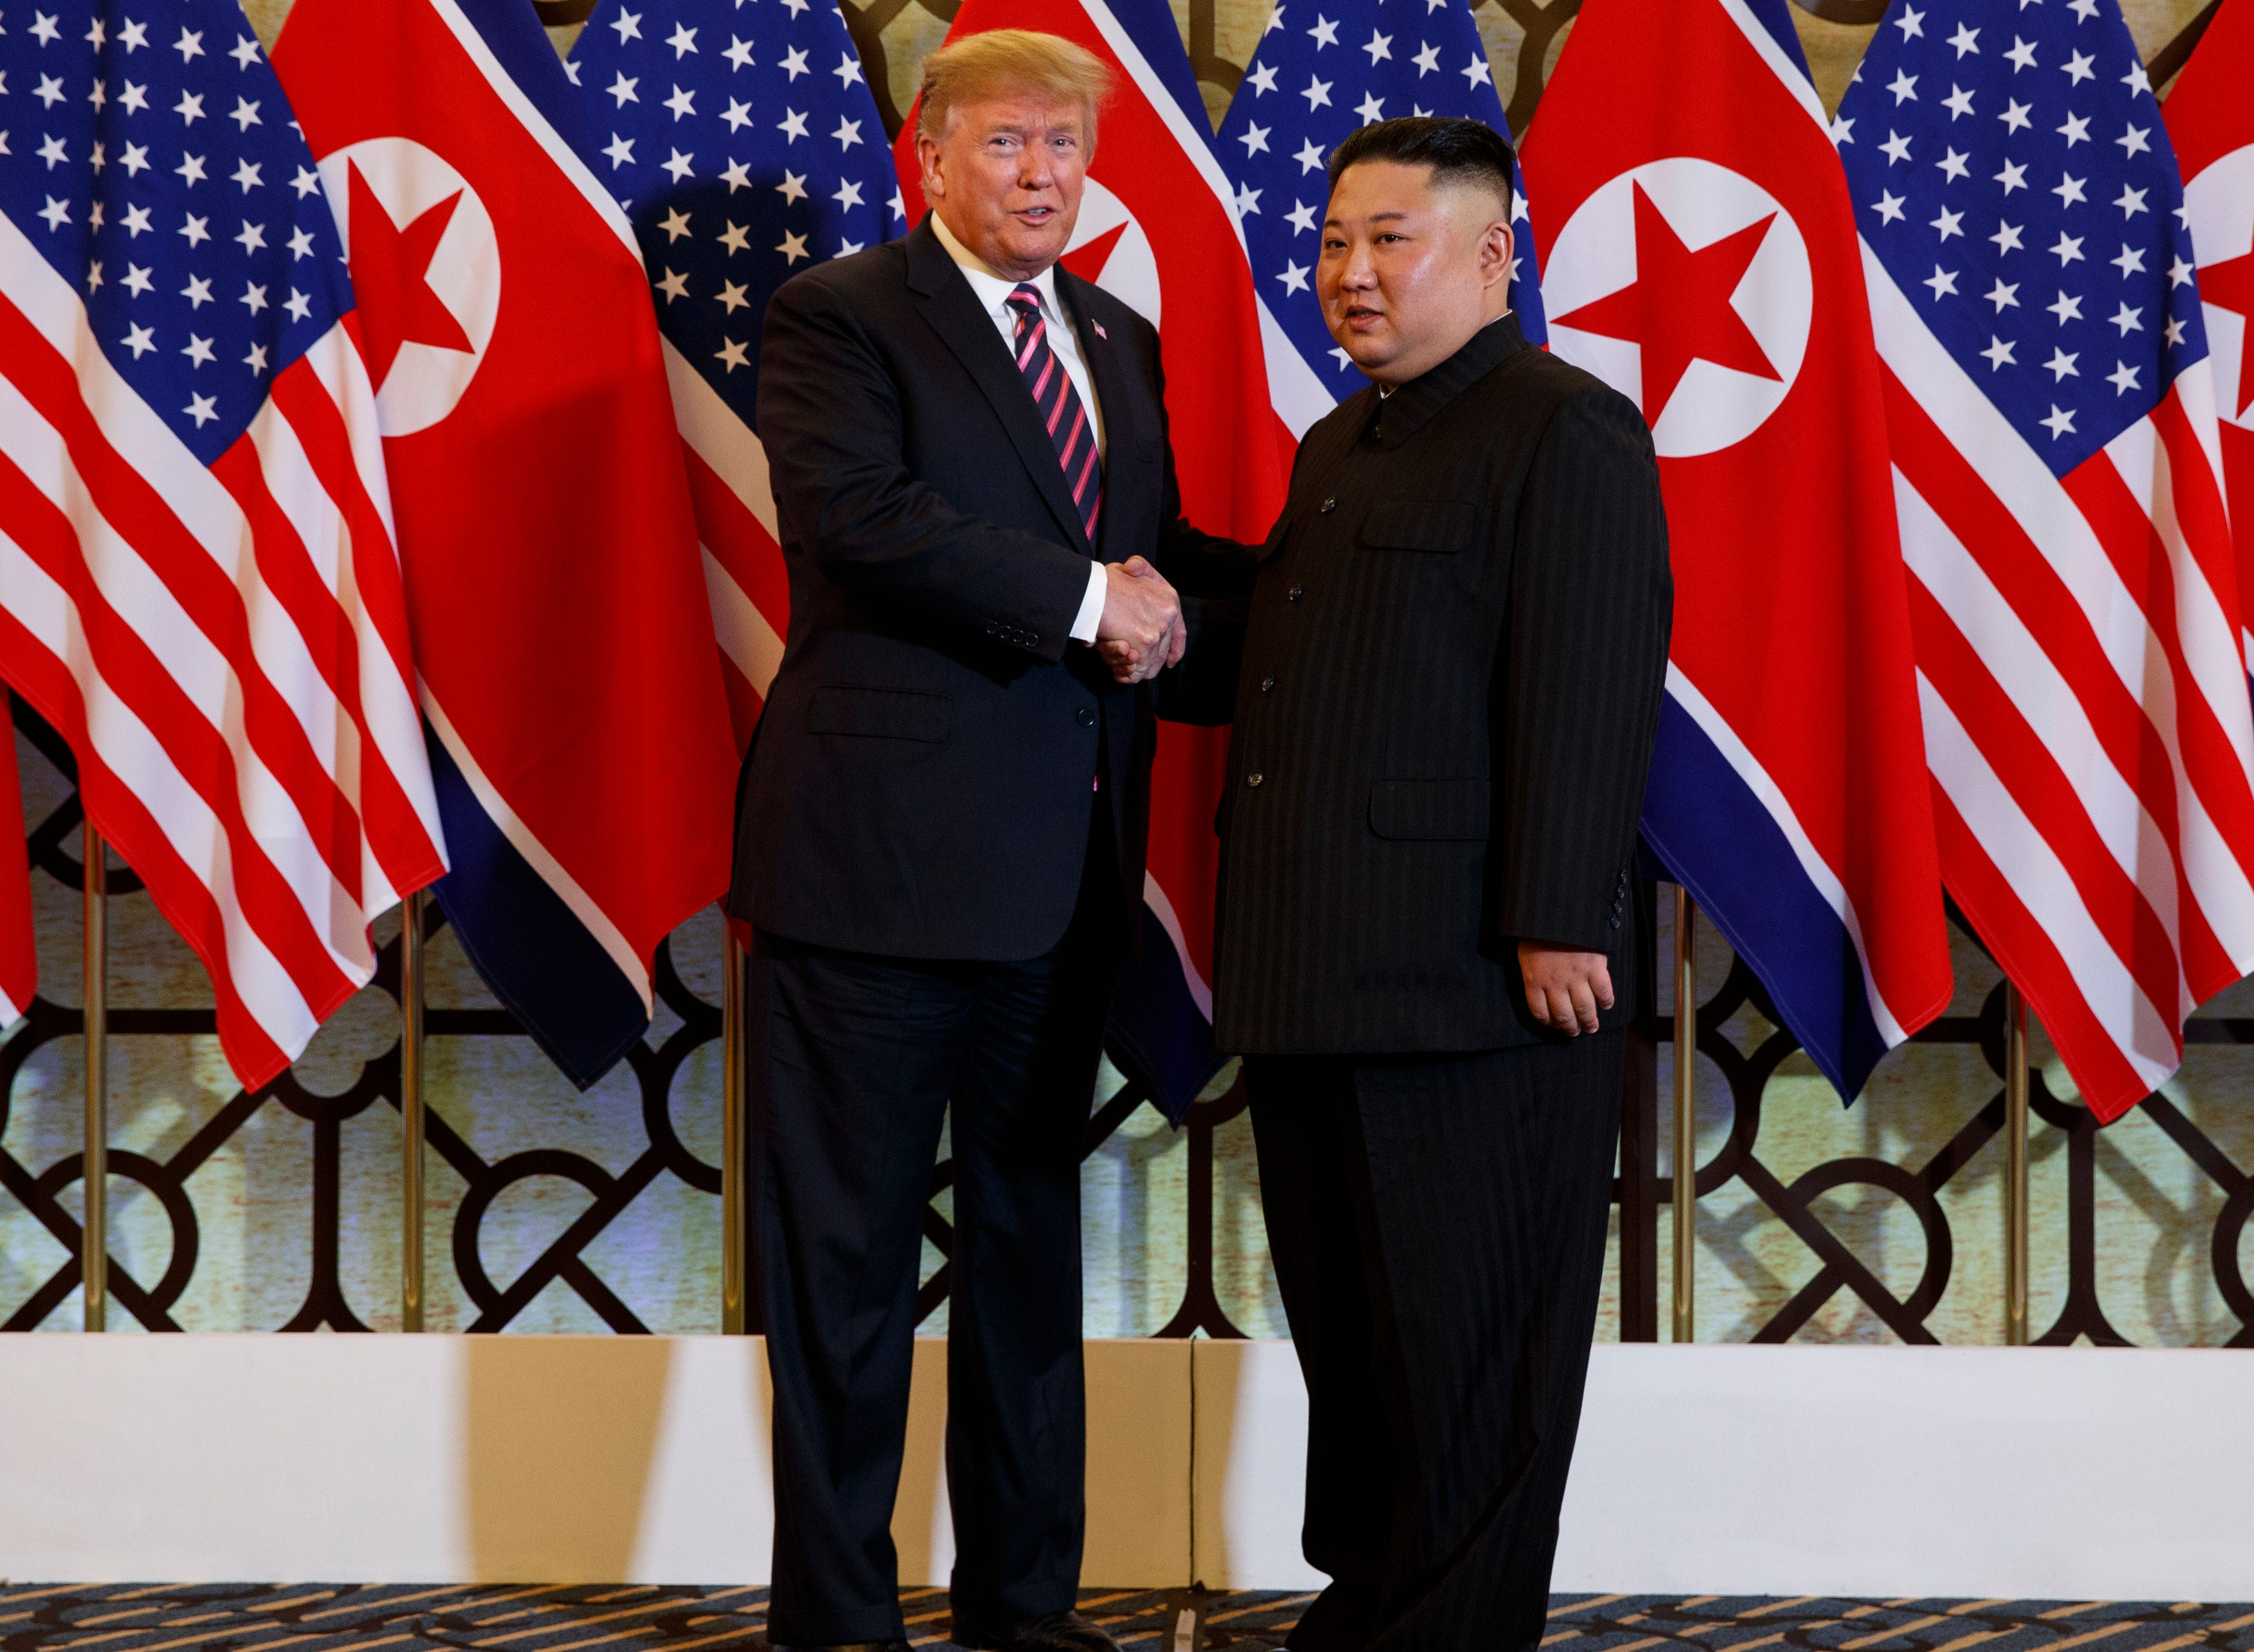 President Donald Trump and North Korean leader Kim Jong Un pose during their summit in Hanoi, Vietnam, Feb. 28, 2019.